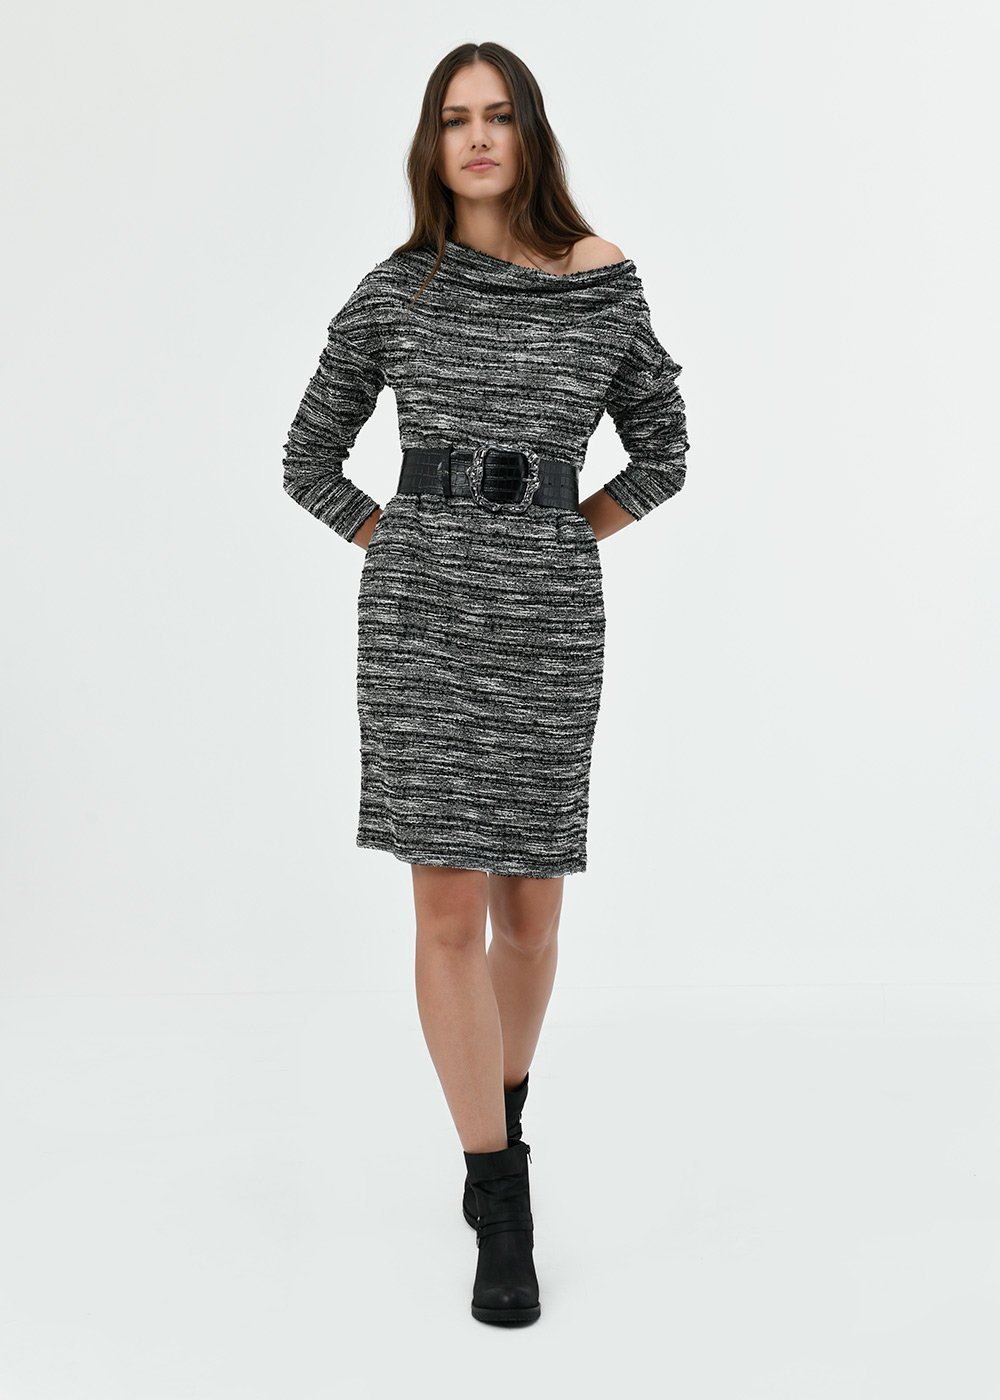 Andres jacquard dress with waist belt - Black / White / Multi - Woman